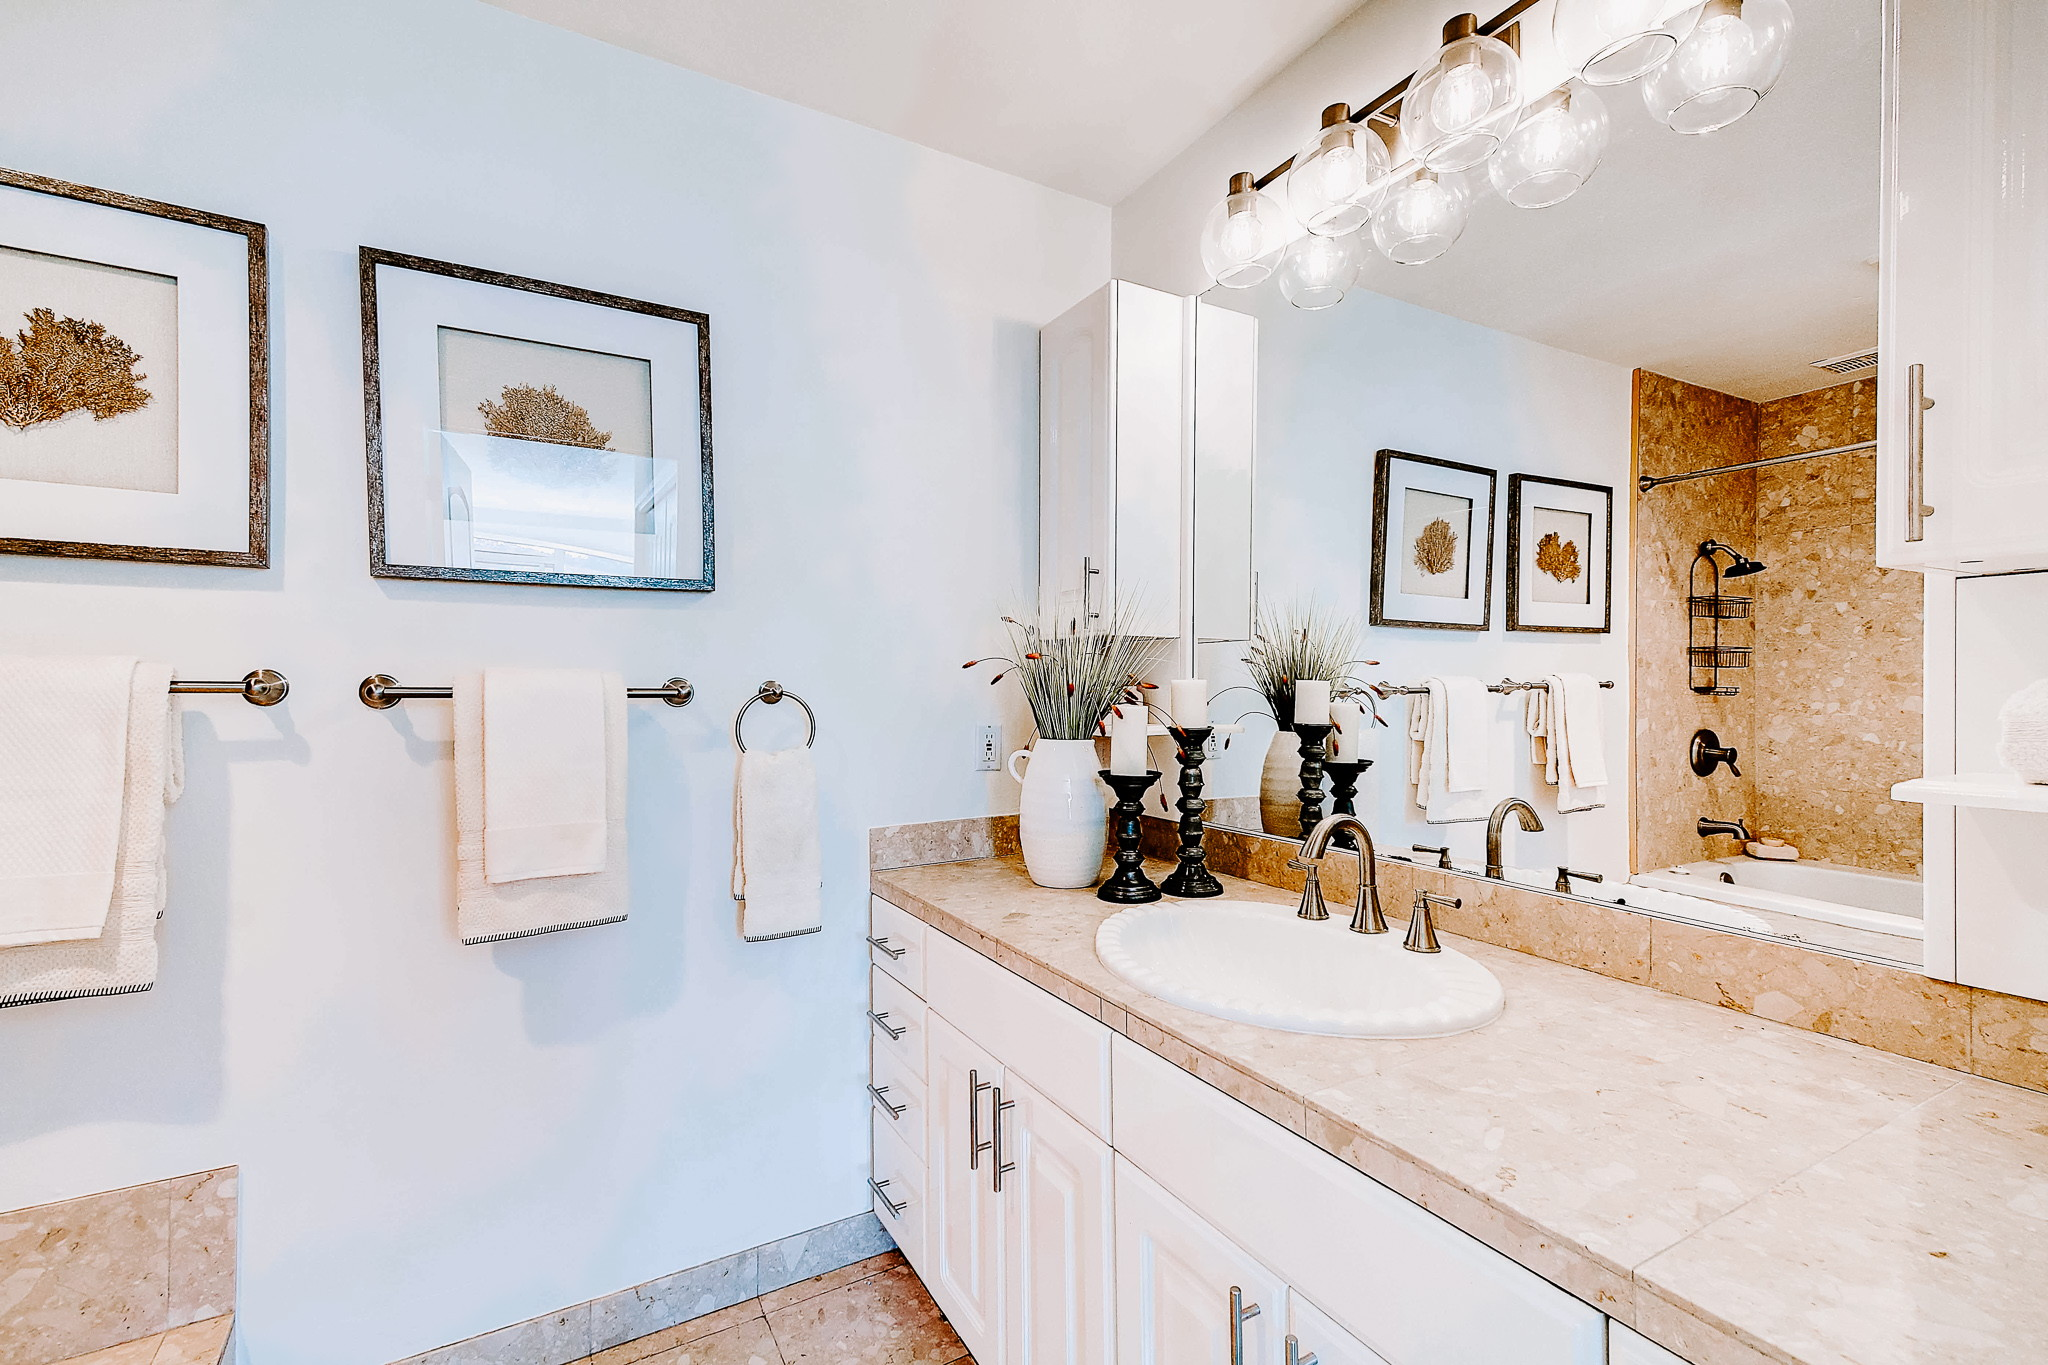 3223 Shelter Bay Avenue-27 Mill Valley Top Realtor - Allie Fornesi on Own Marin County's #1 Real Estate Team.jpg